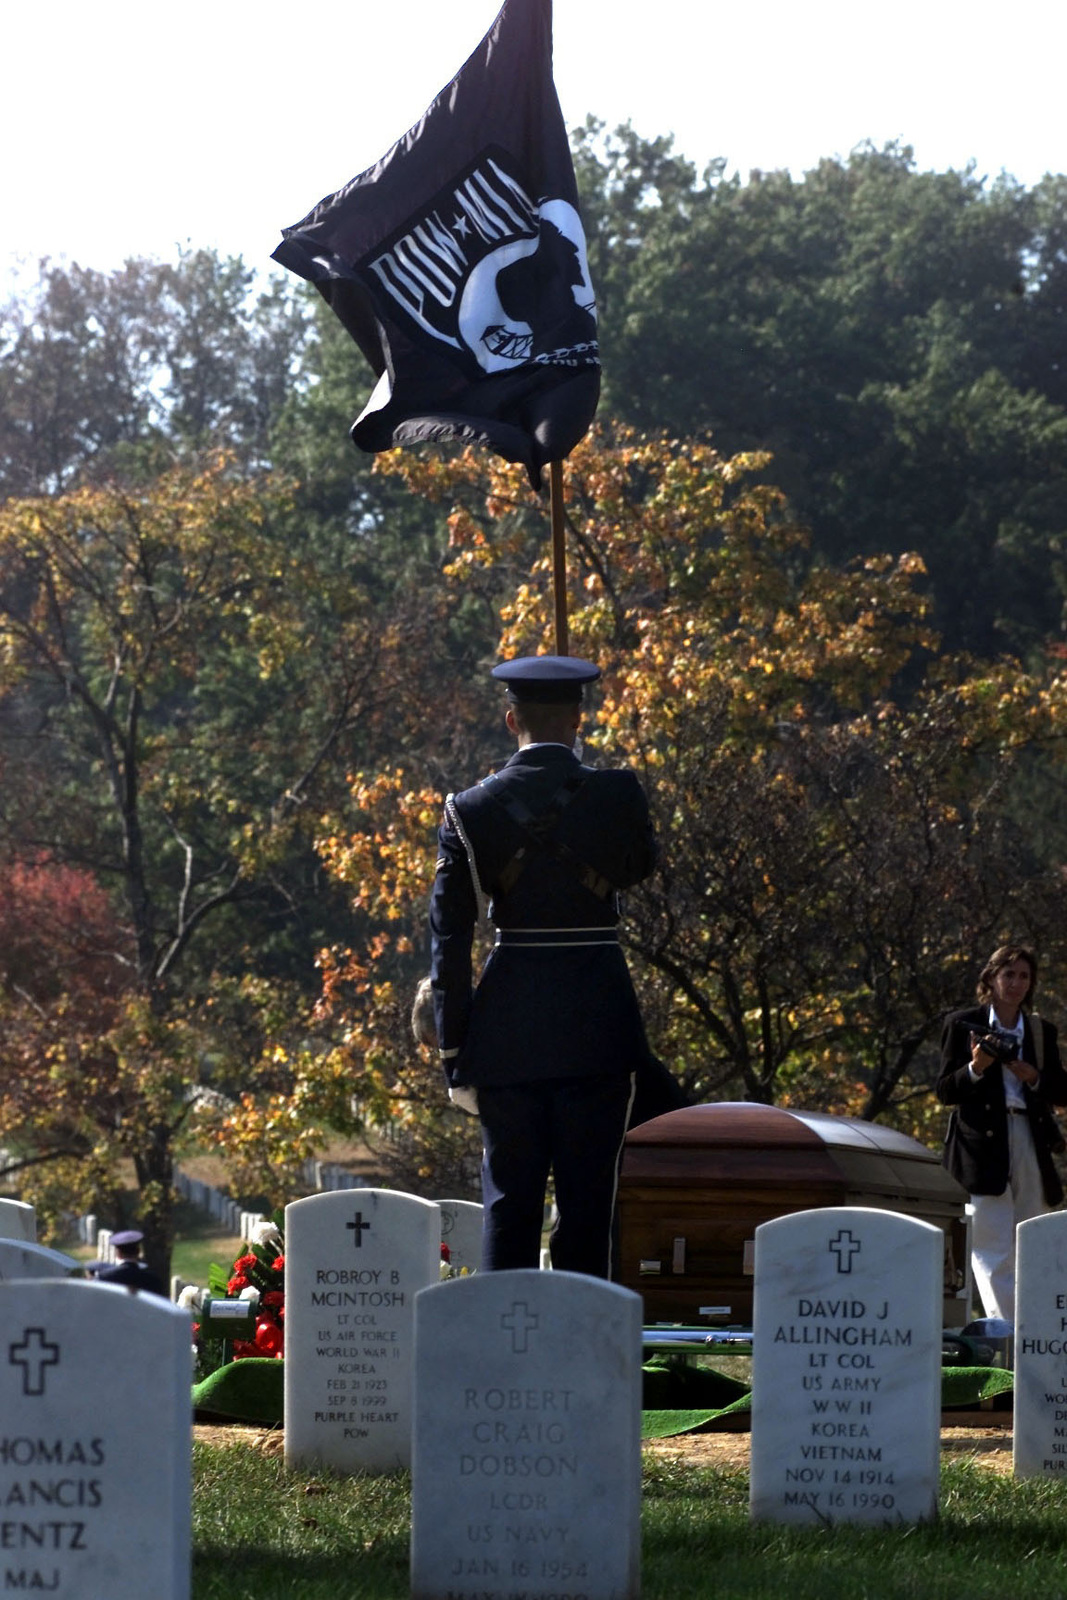 A US Air Force member, with his back to the camera, holds the POW/MIA flag during a full honor funeral for US Air Force Second Lieutenant Richard Vandegeer at Arlington National Cemetery on October 27, 2000